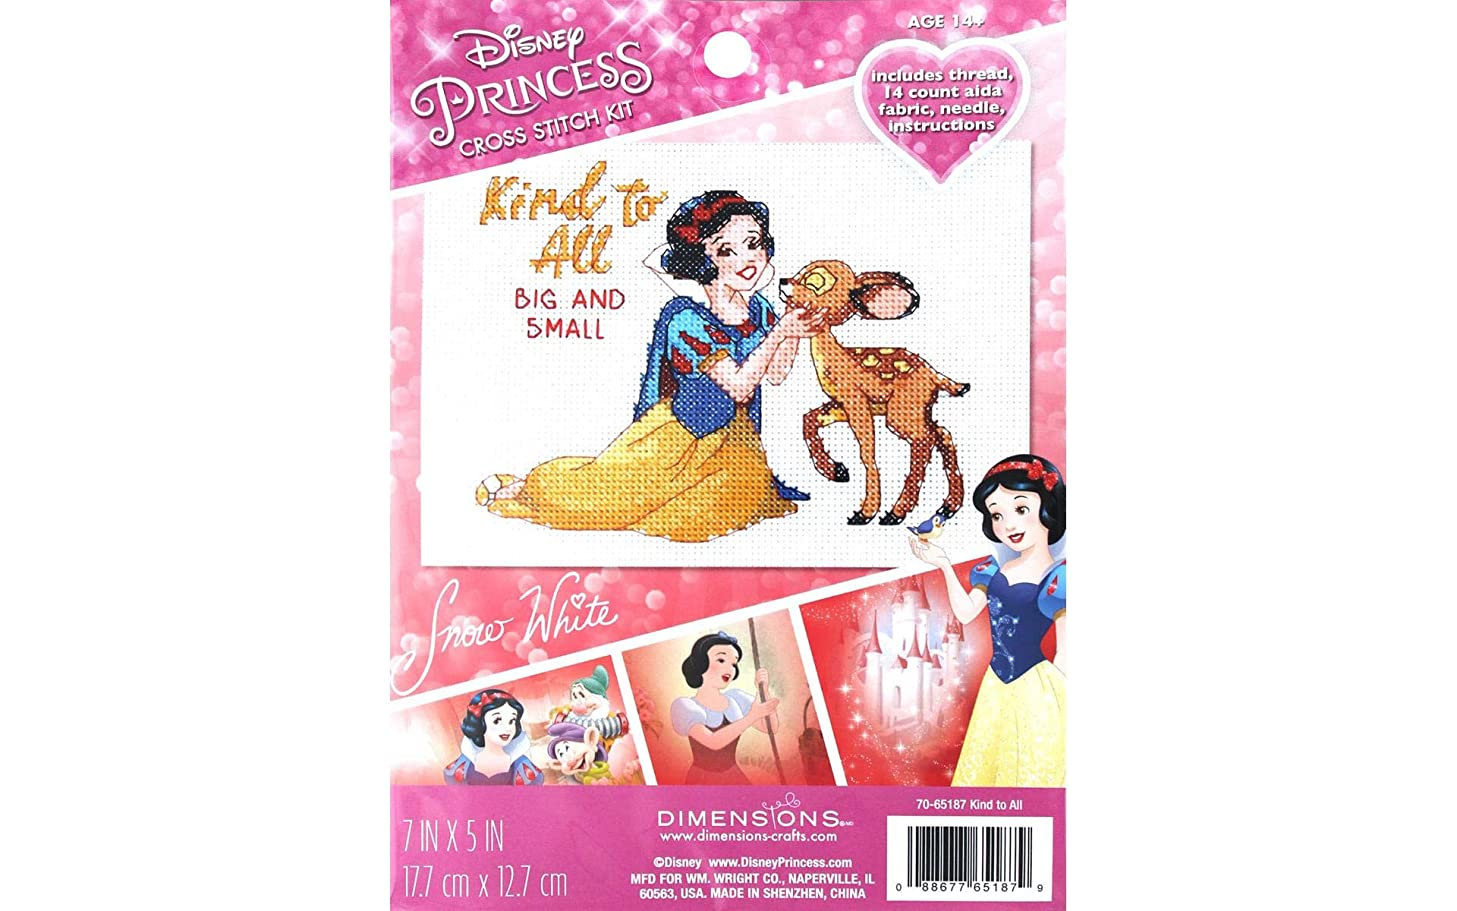 Dimensions Disney Snow White Counted Cross Stitch Kit for Beginners,